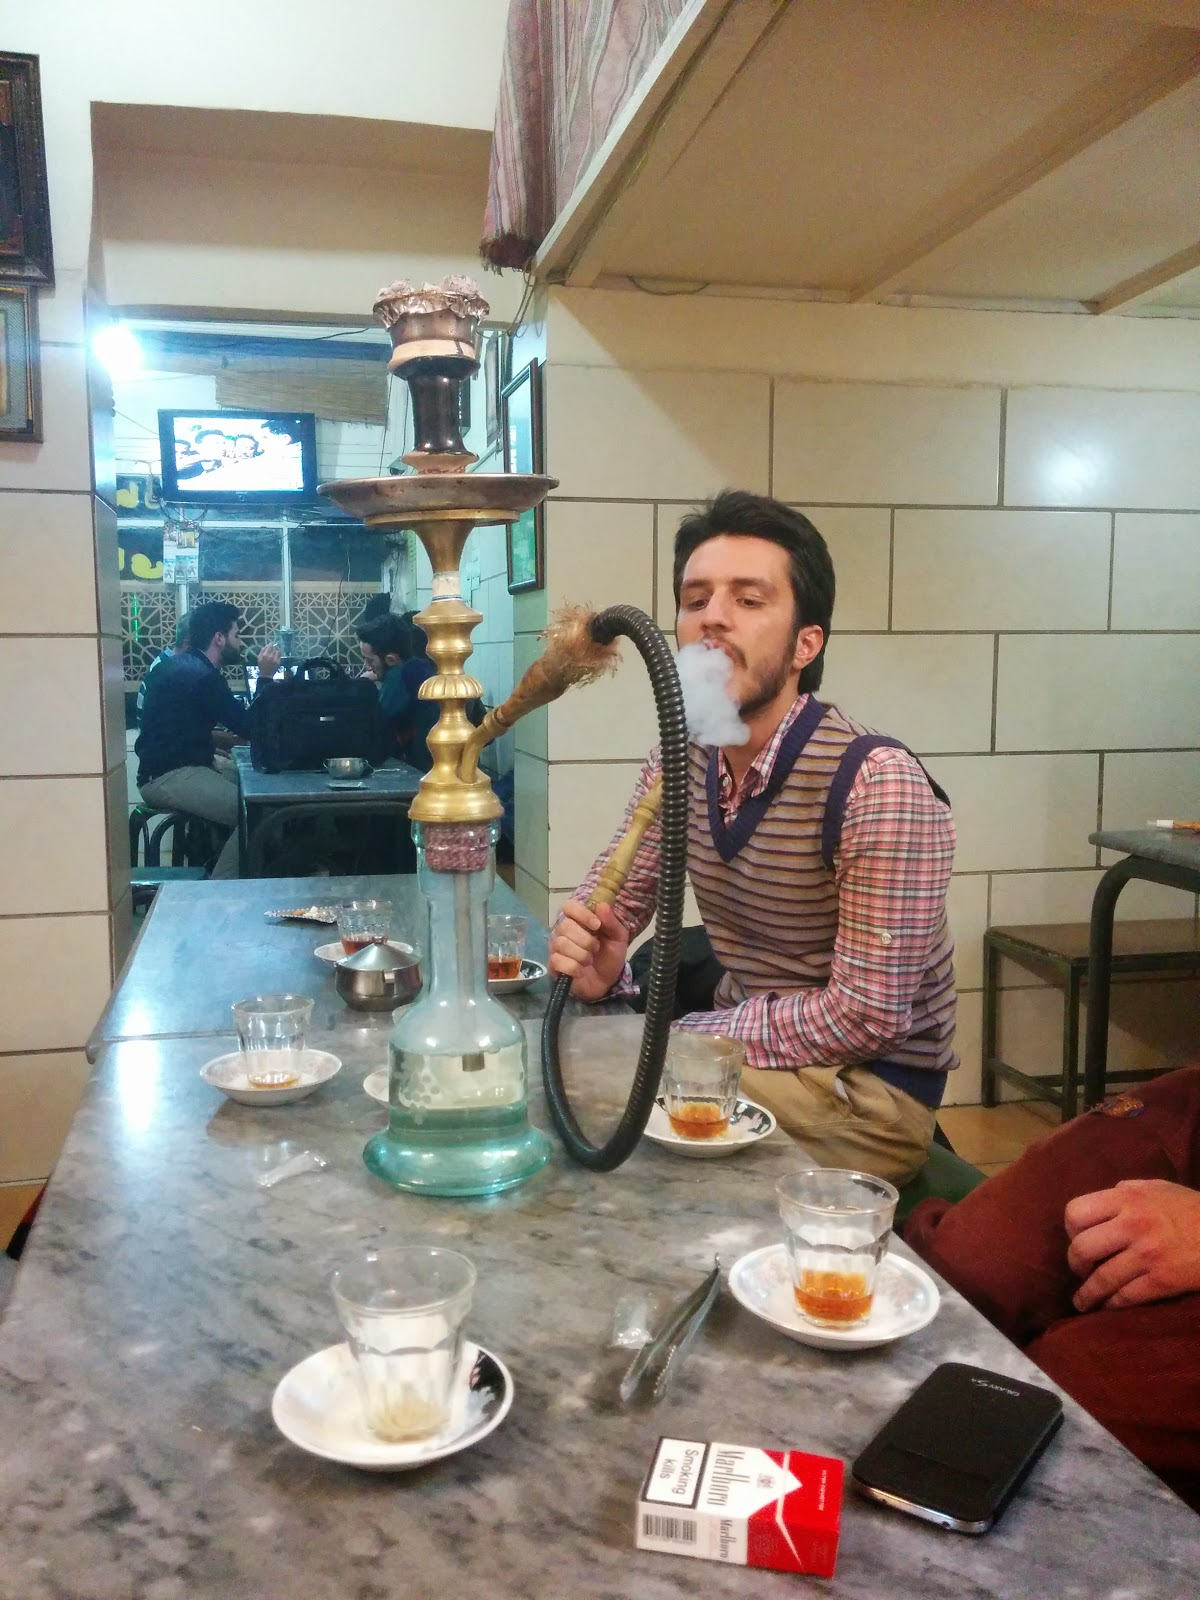 Tea and Hookahs are a favorite evening past time of Iran